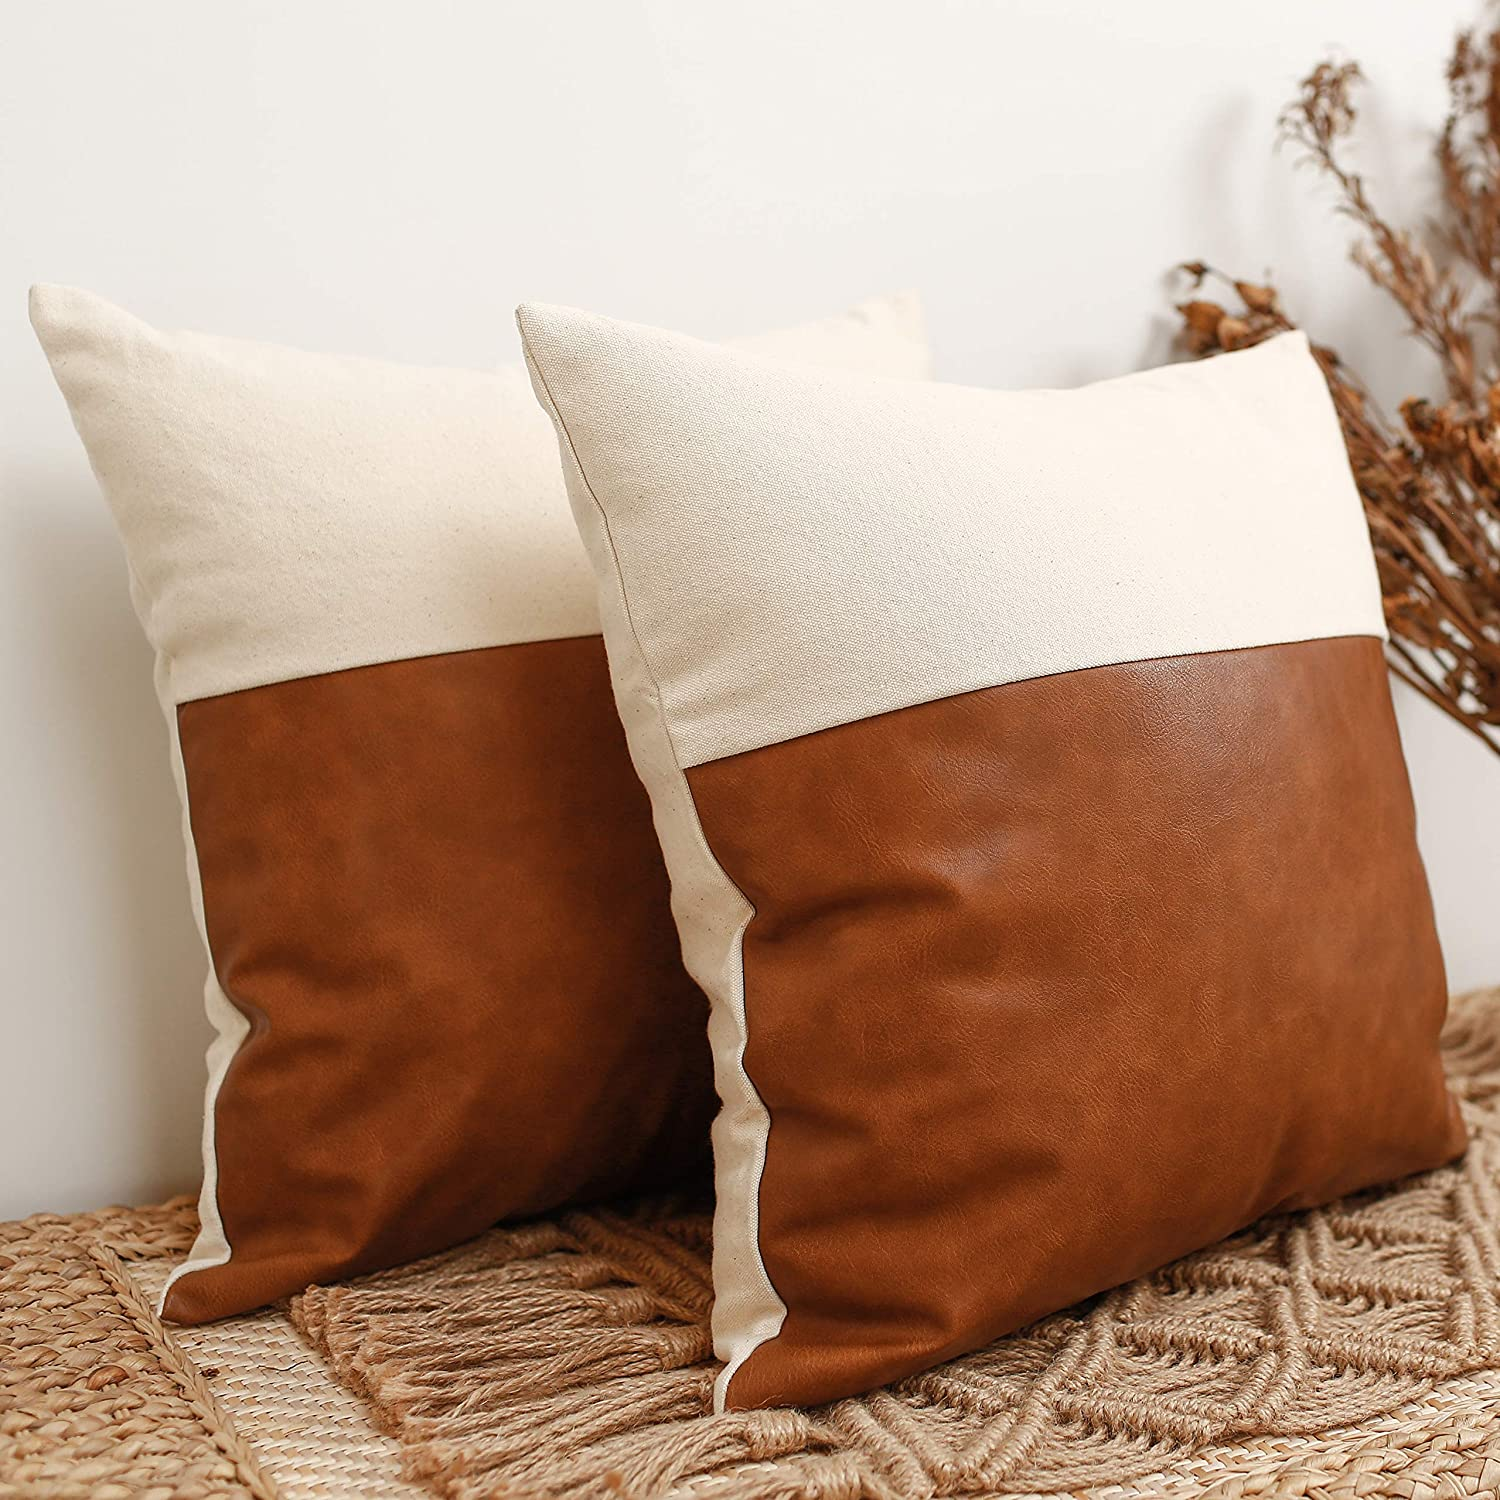 HOMFINER Faux Leather and 100% Thick Natural Cotton Decorative Throw Pillow Covers 18x18, Set of 2 Modern Farmhouse Boho Rustic Decor Accent Cases for Living Room Bedroom Bed Couch Cream Cognac Brown